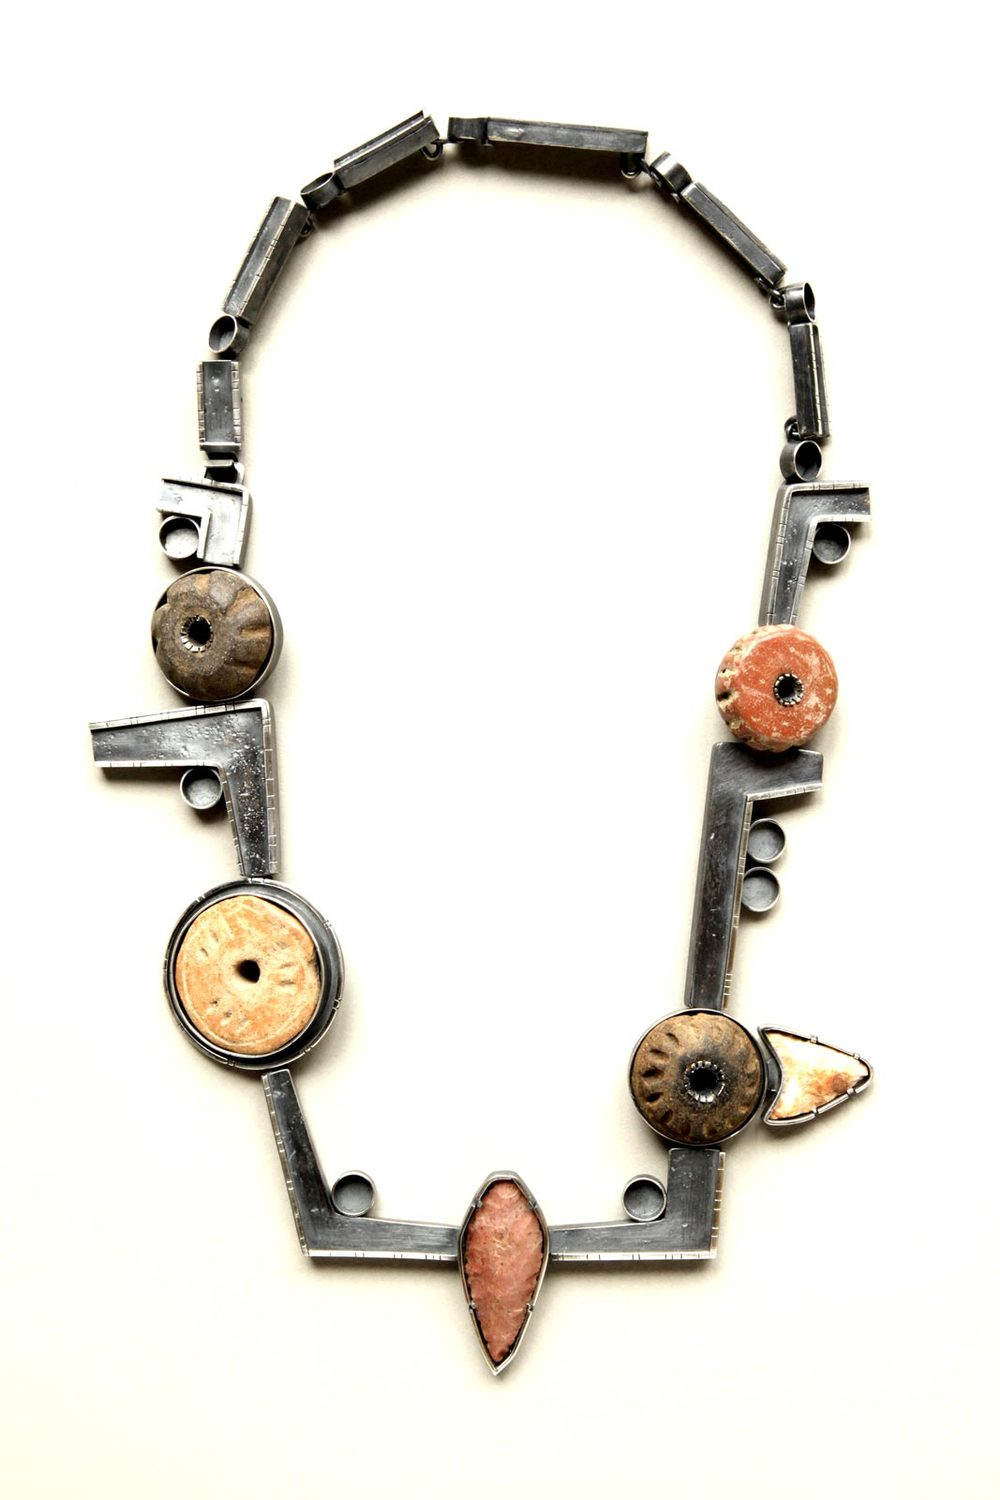 STONES AND WHORLS neckpiece of silver, Guatemalan clay spindles, stone, 30.48 x 16.51 x 1.27 centimeters.